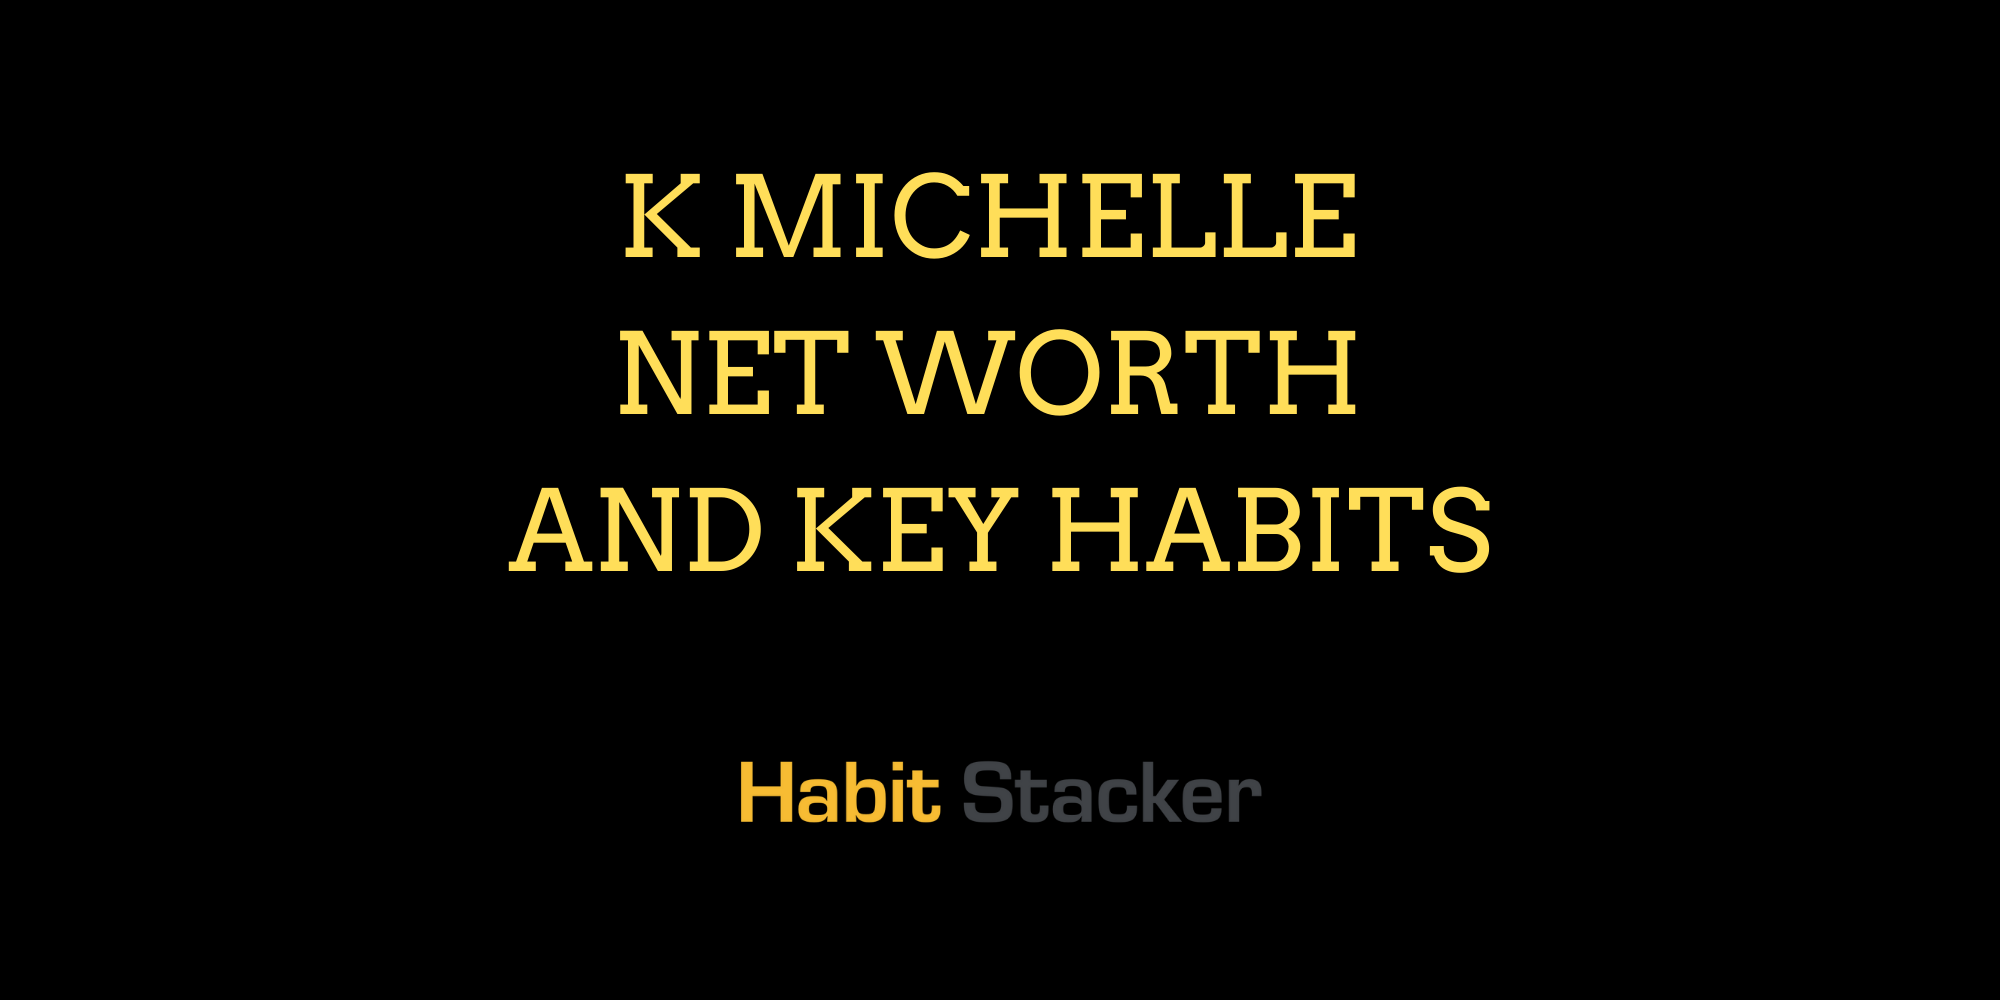 K Michelle Net Worth and Key Habits